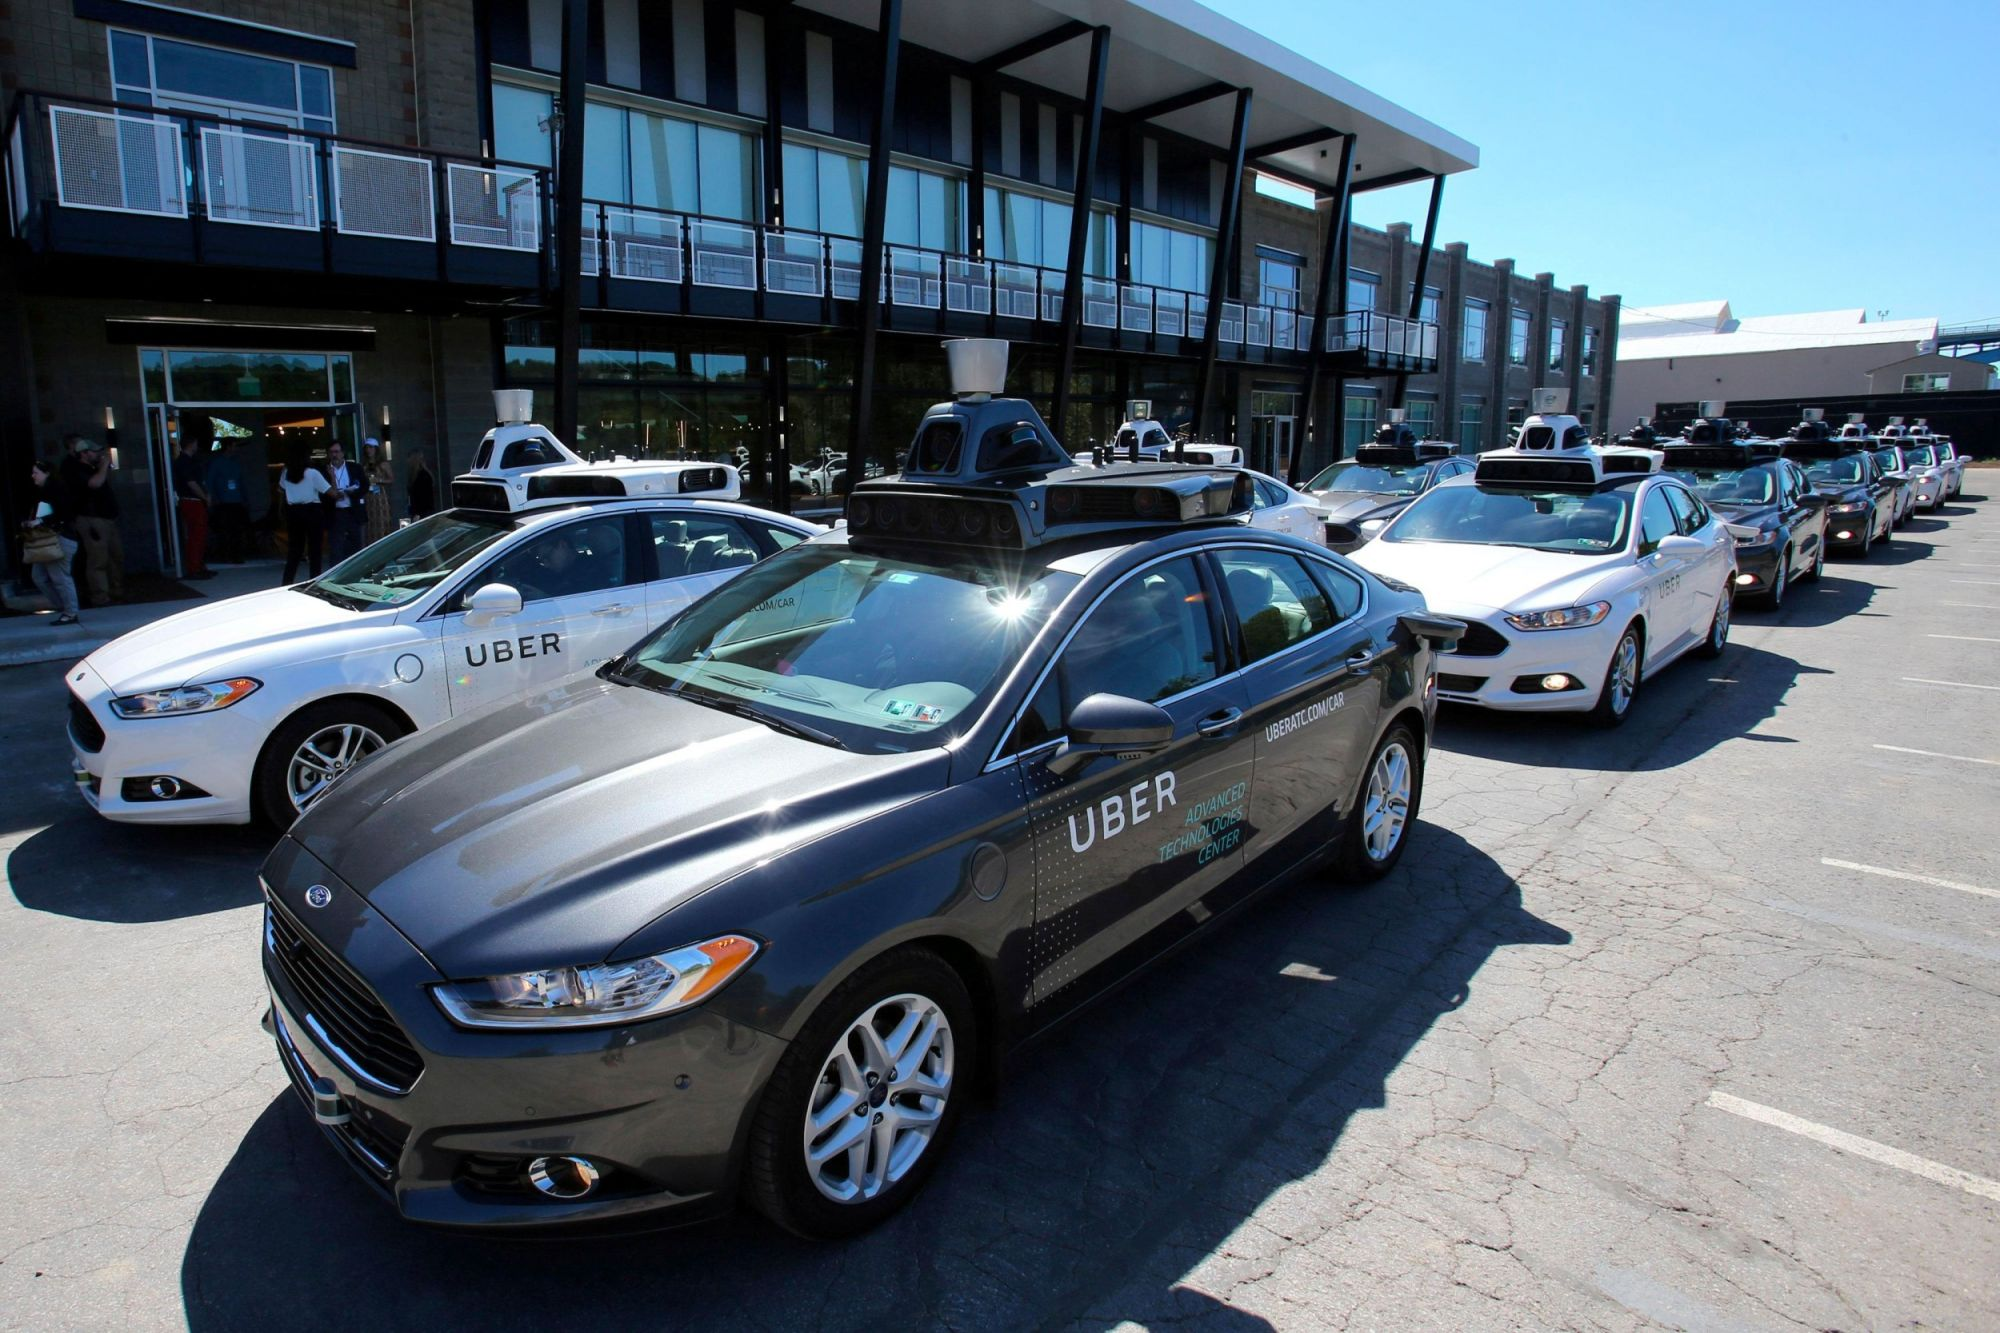 Uber Self-driving Car Involved in Fatal Crash Couldn't Detect Jaywalkers